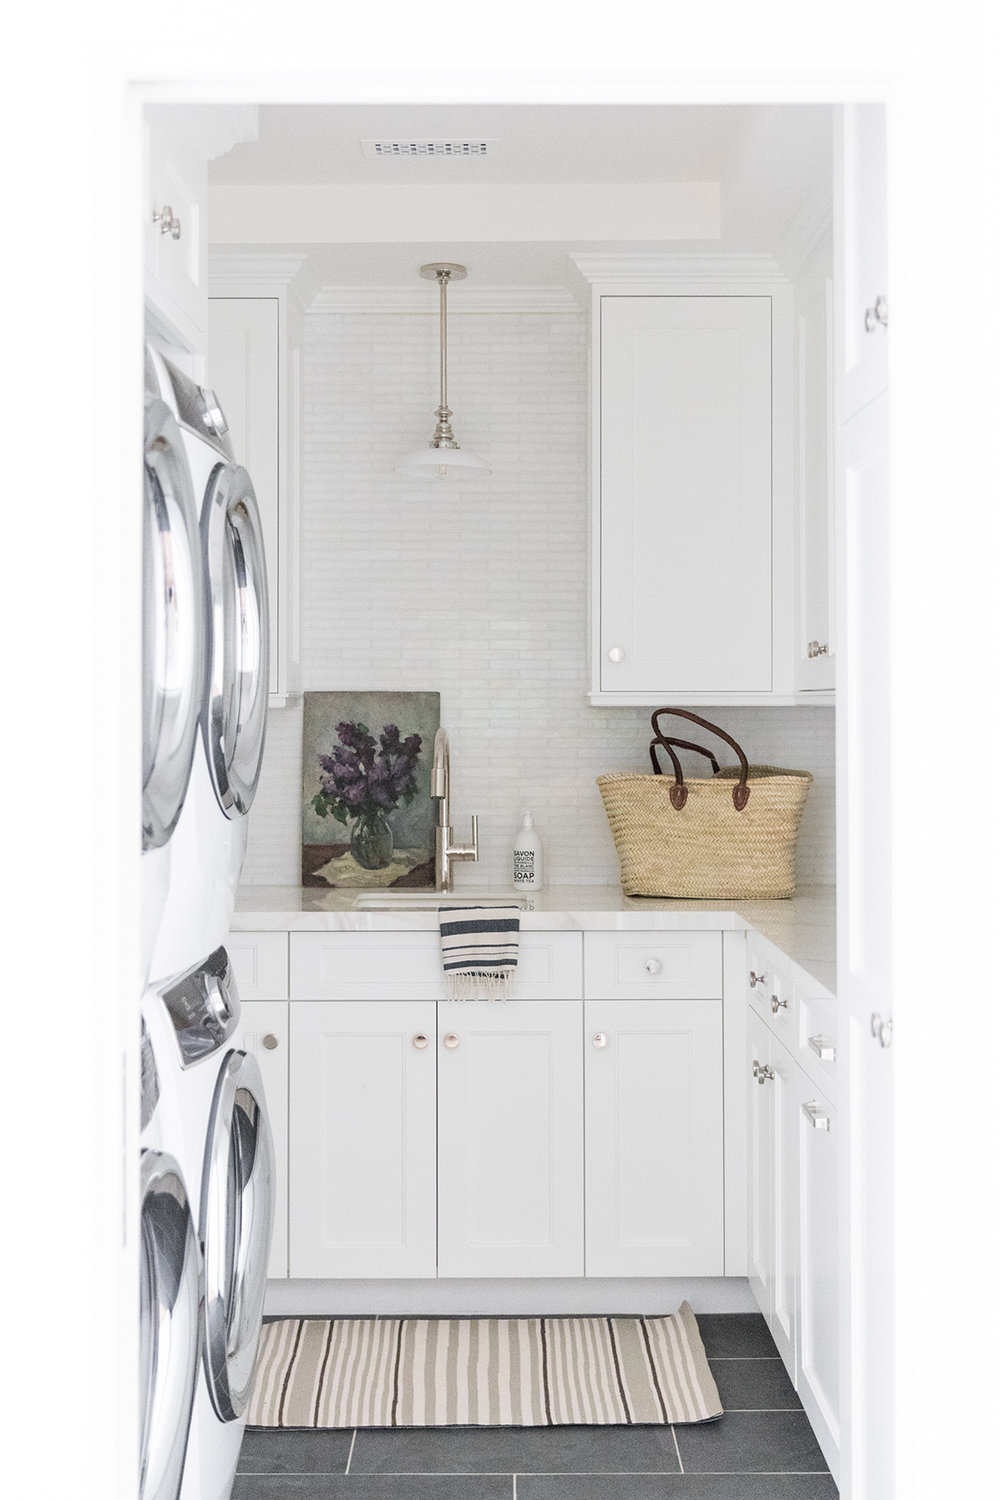 Fresh laundry room design inspiration | studio mcgee blog